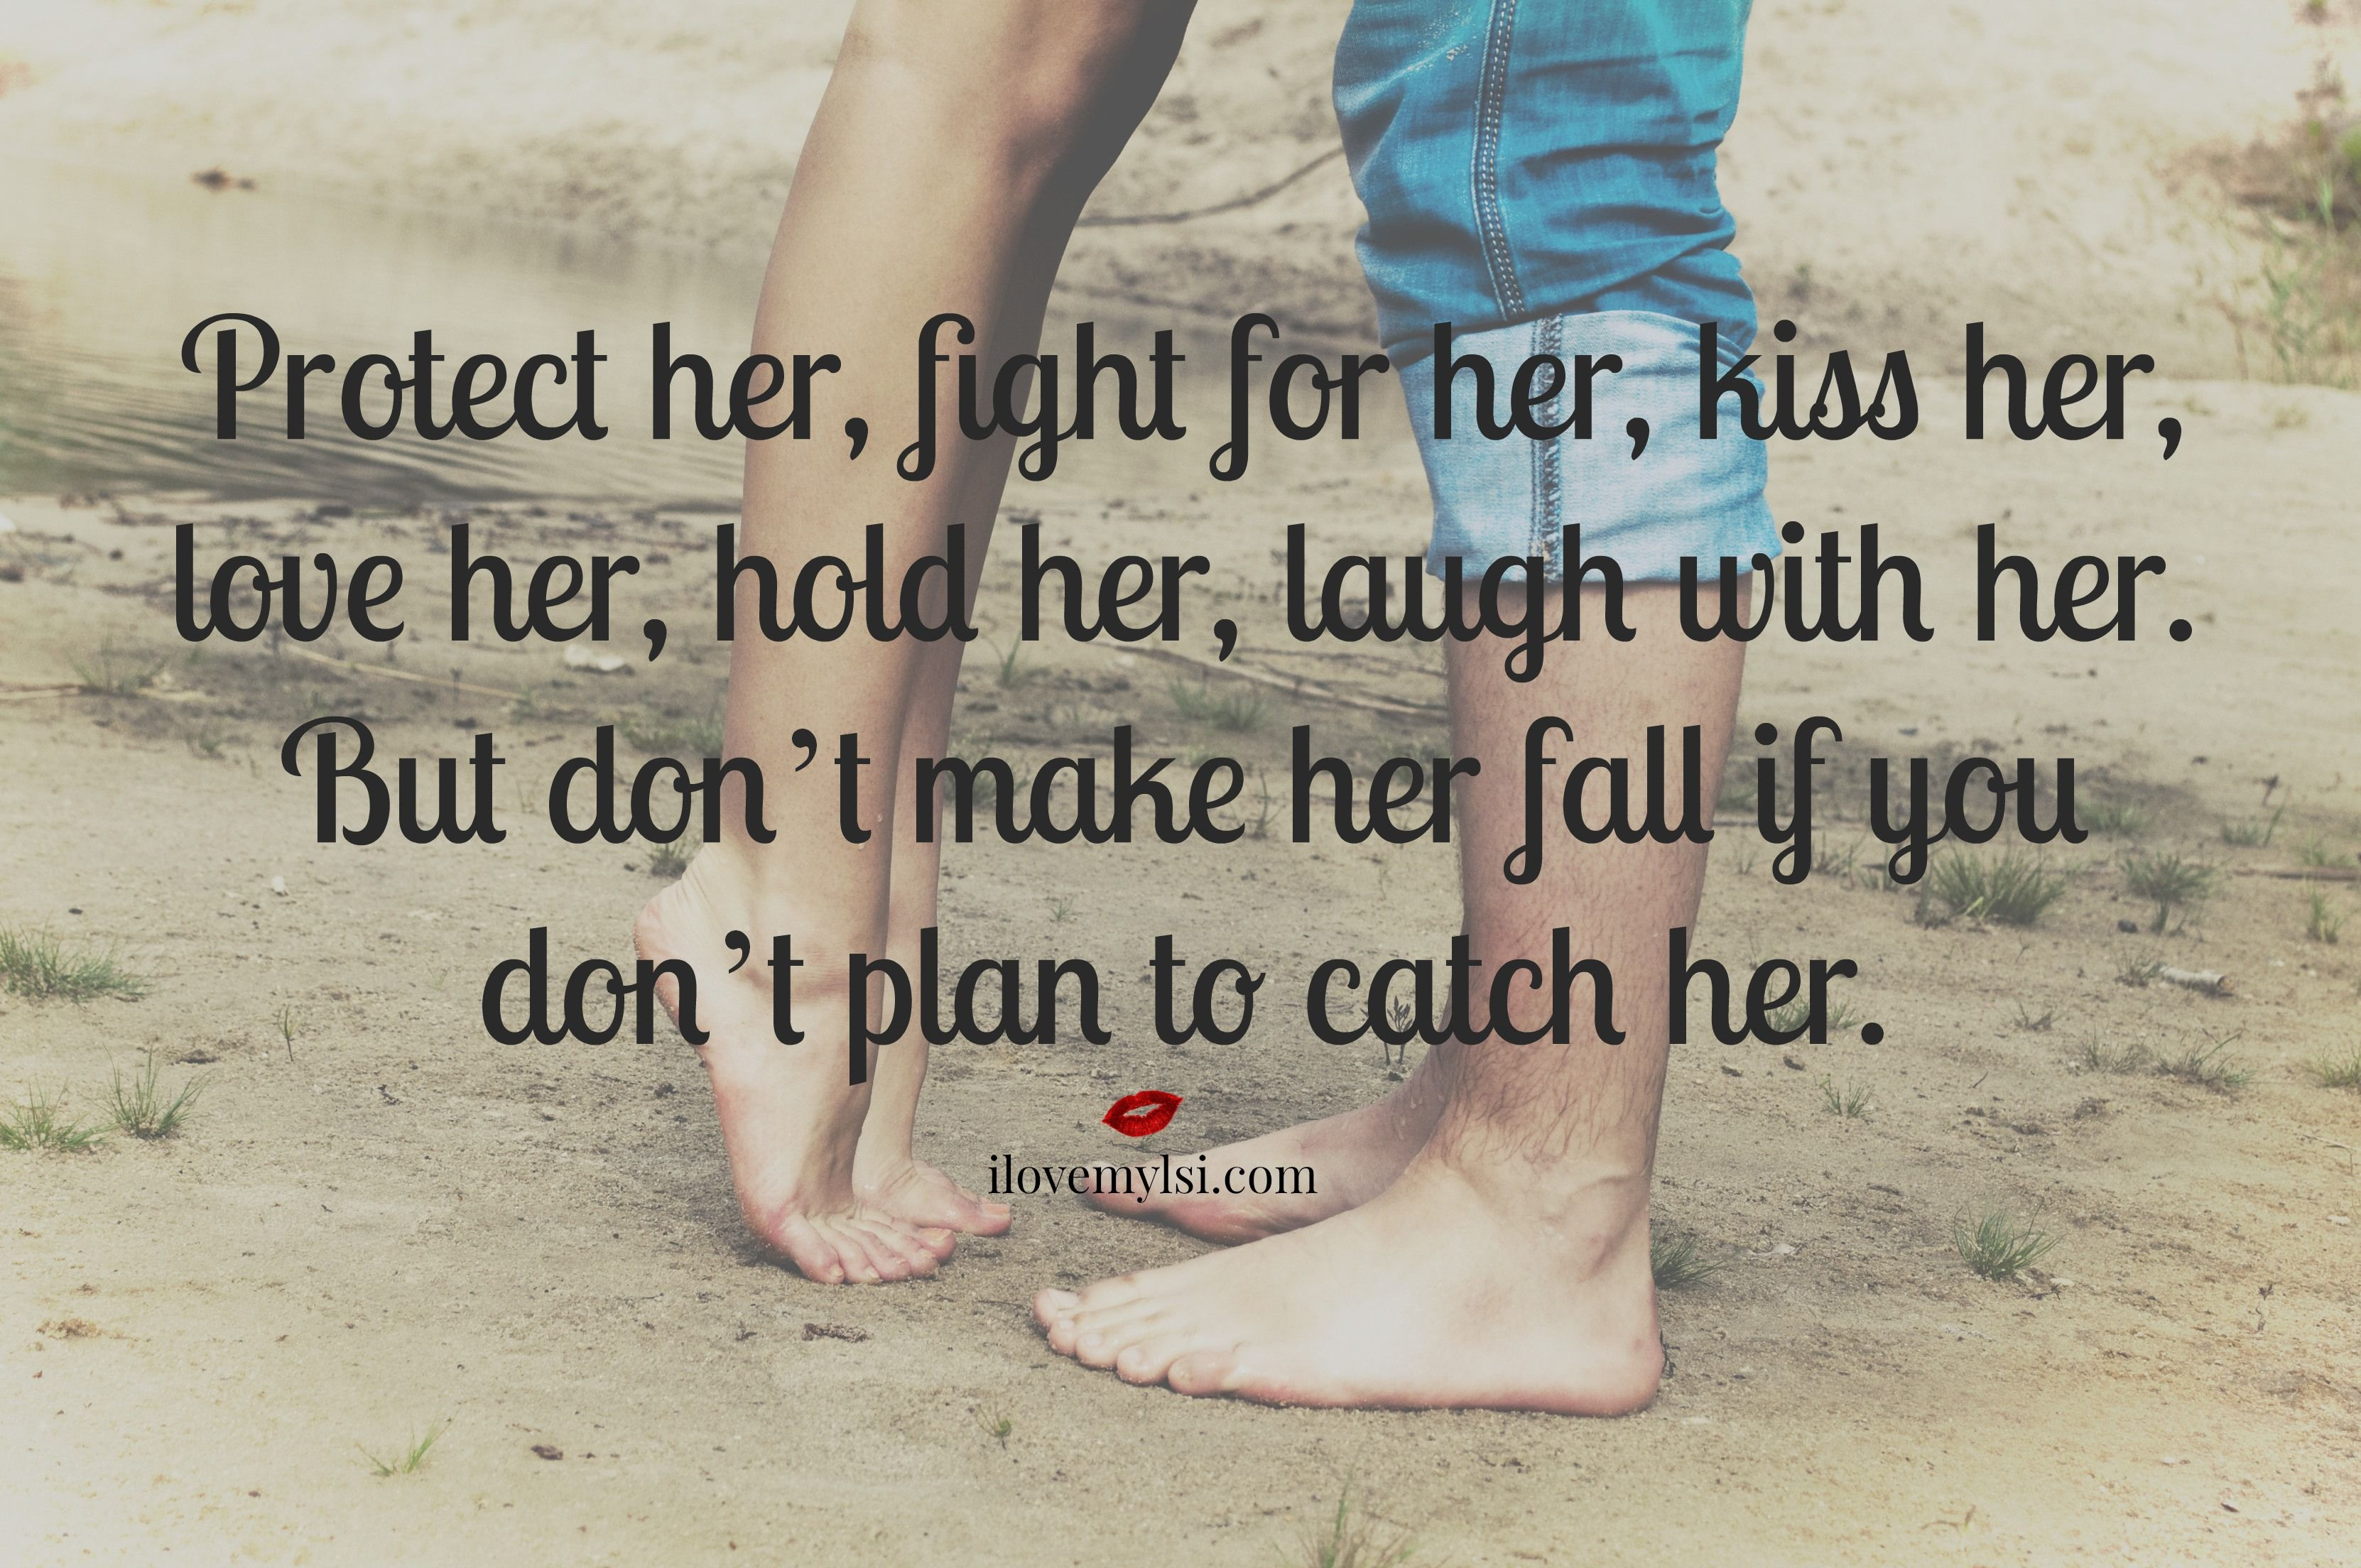 Protect Her Fight For Her Kiss Her I Love My Lsi Love Quotes For Her Love Her Love Quotes